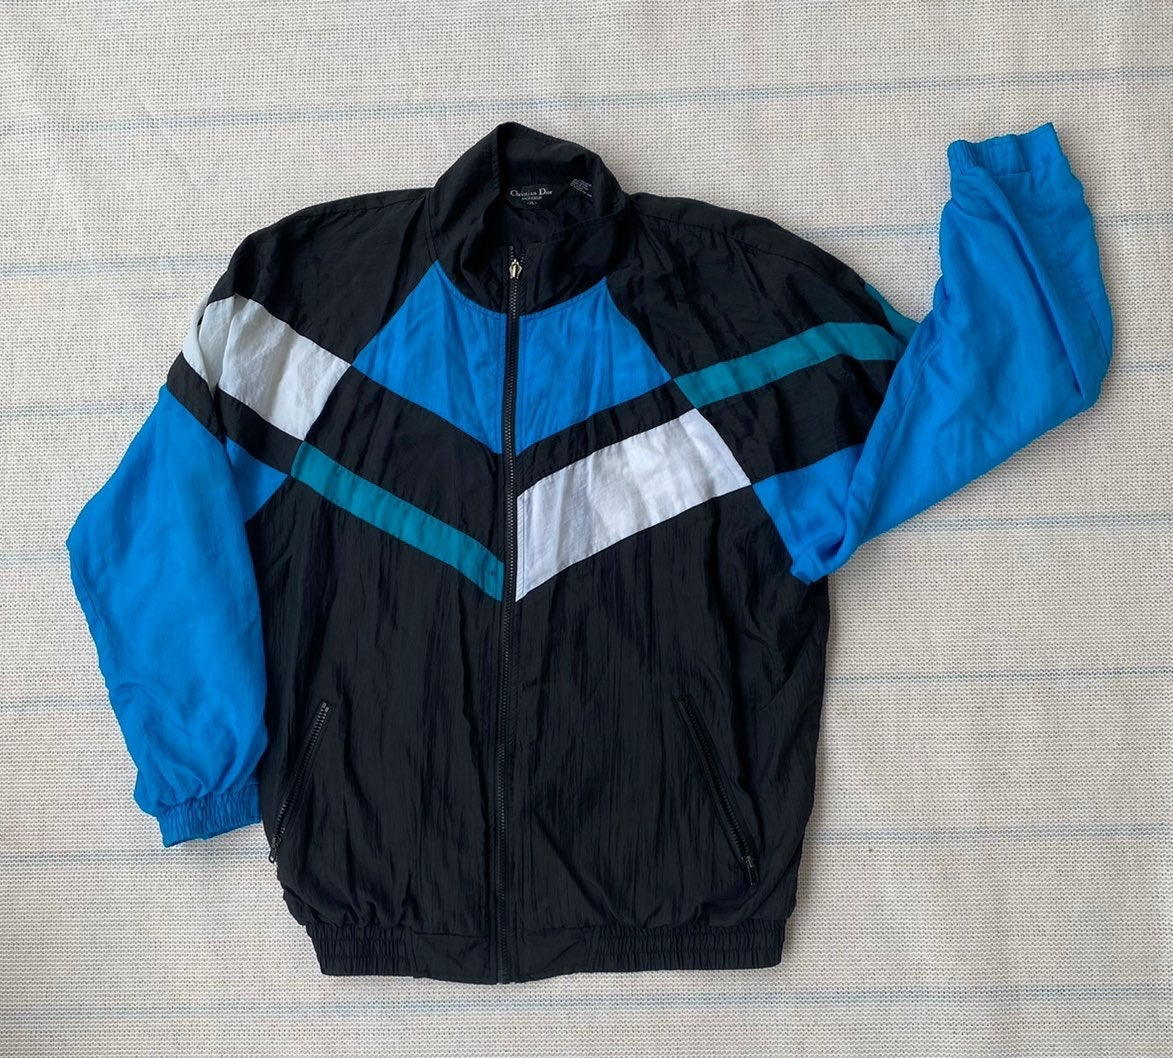 Christian Dior Vintage Windbreaker